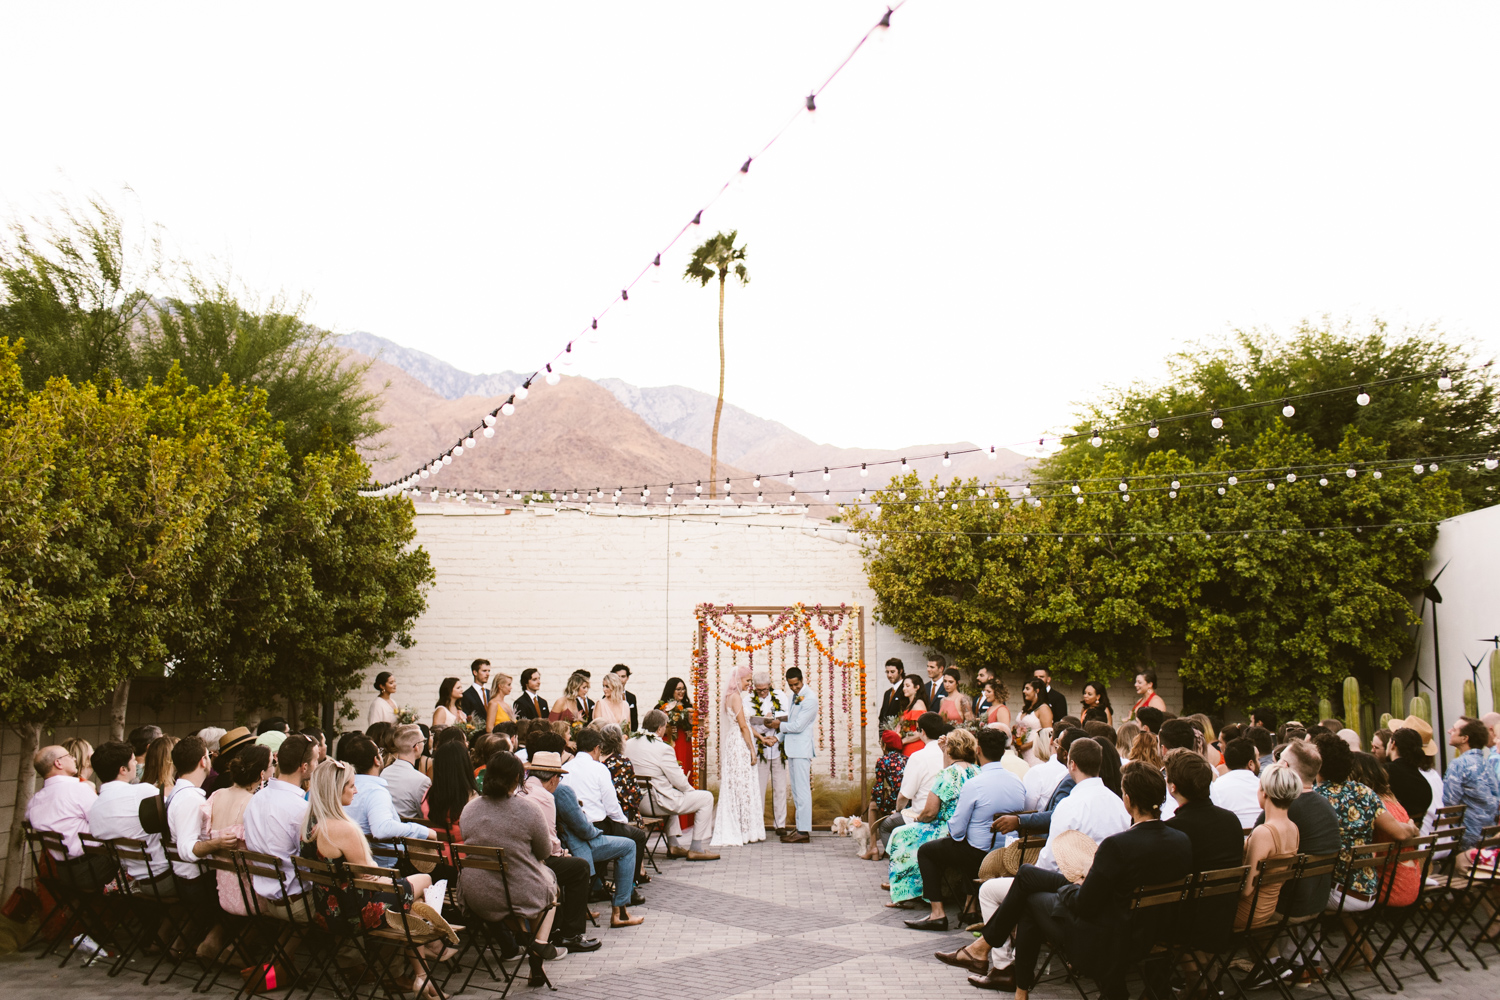 westlund-photography-palm-springs-wedding-41.jpg